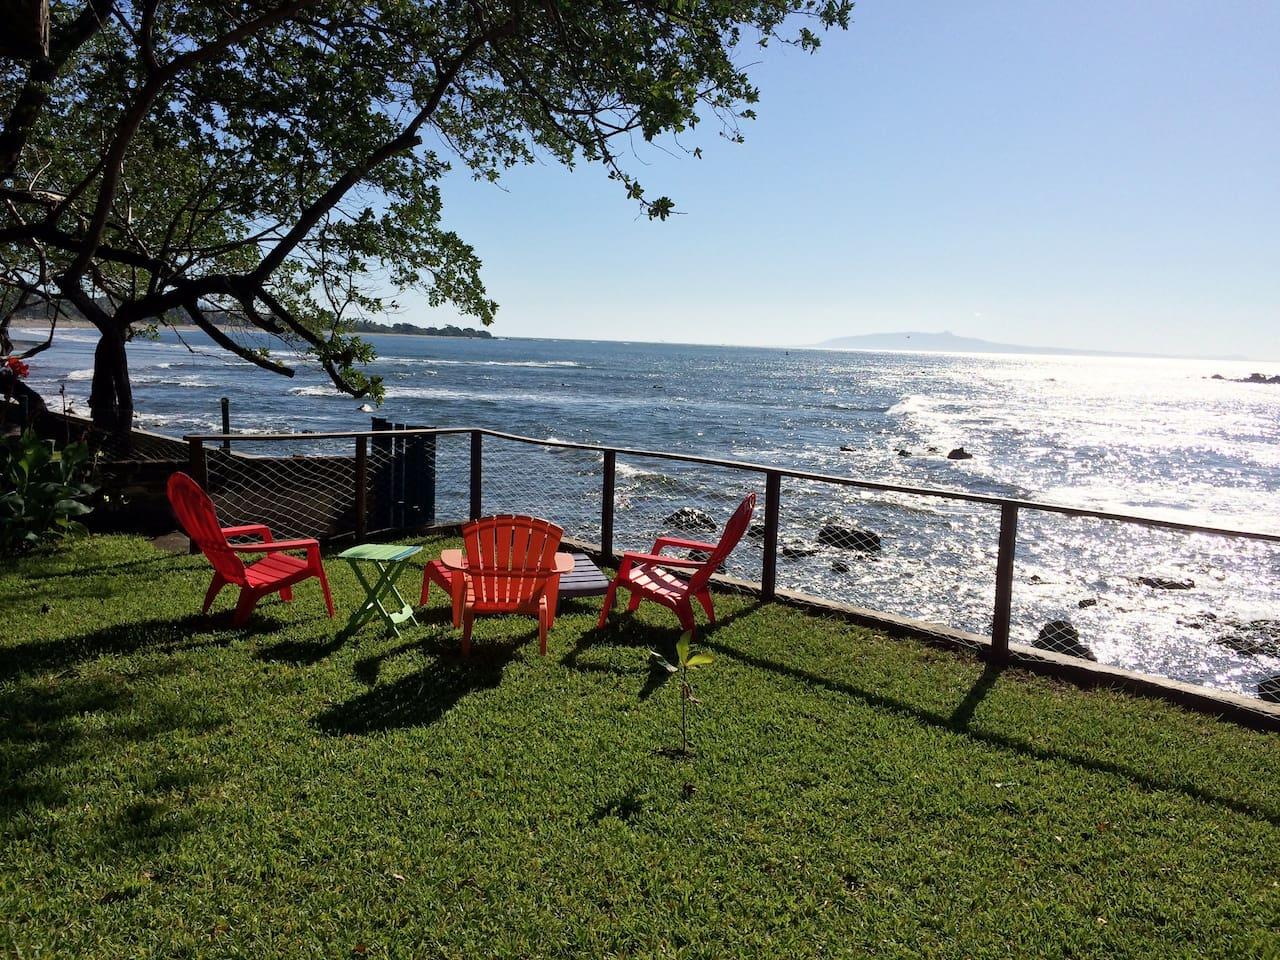 an afternoon to relax comfortably seated in front of this distinct ocean